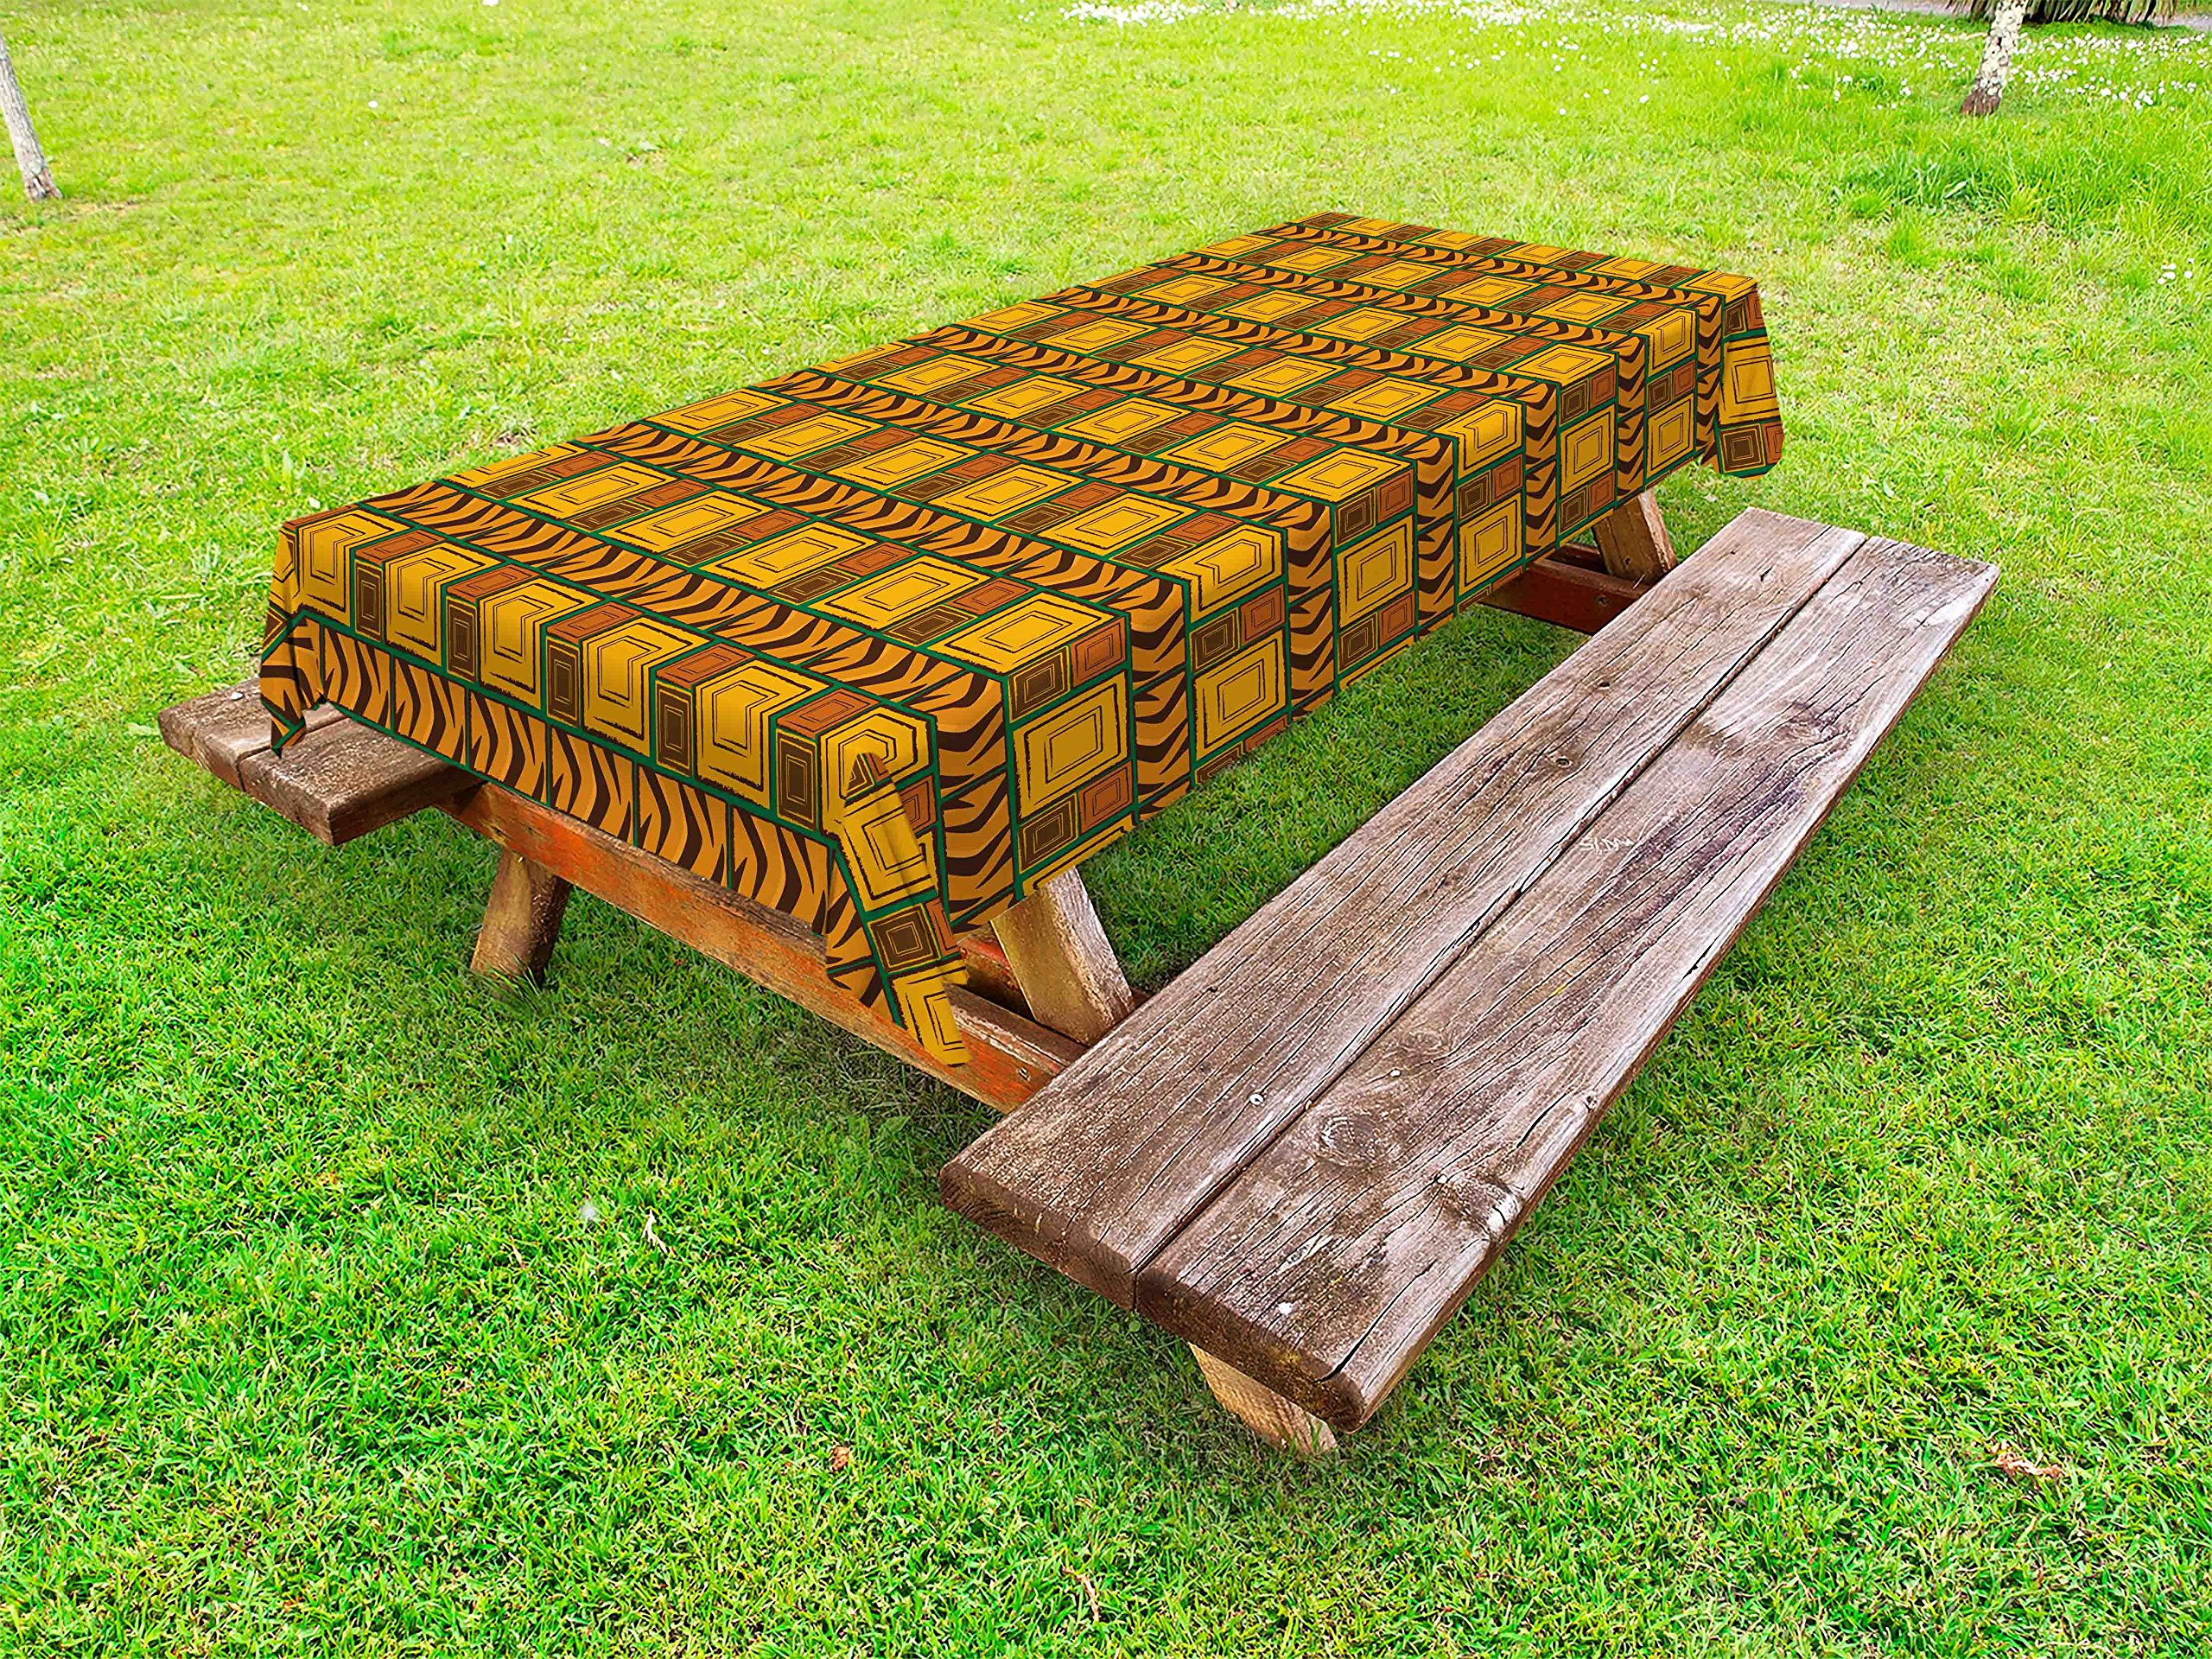 Ambesonne Zambia Outdoor Tablecloth, Kenya Ethnic Motif with Geometrical Aztec Native American Effects Print, Decorative Washable Picnic Table Cloth, 58 X 104 inches, Yellow Brown Green